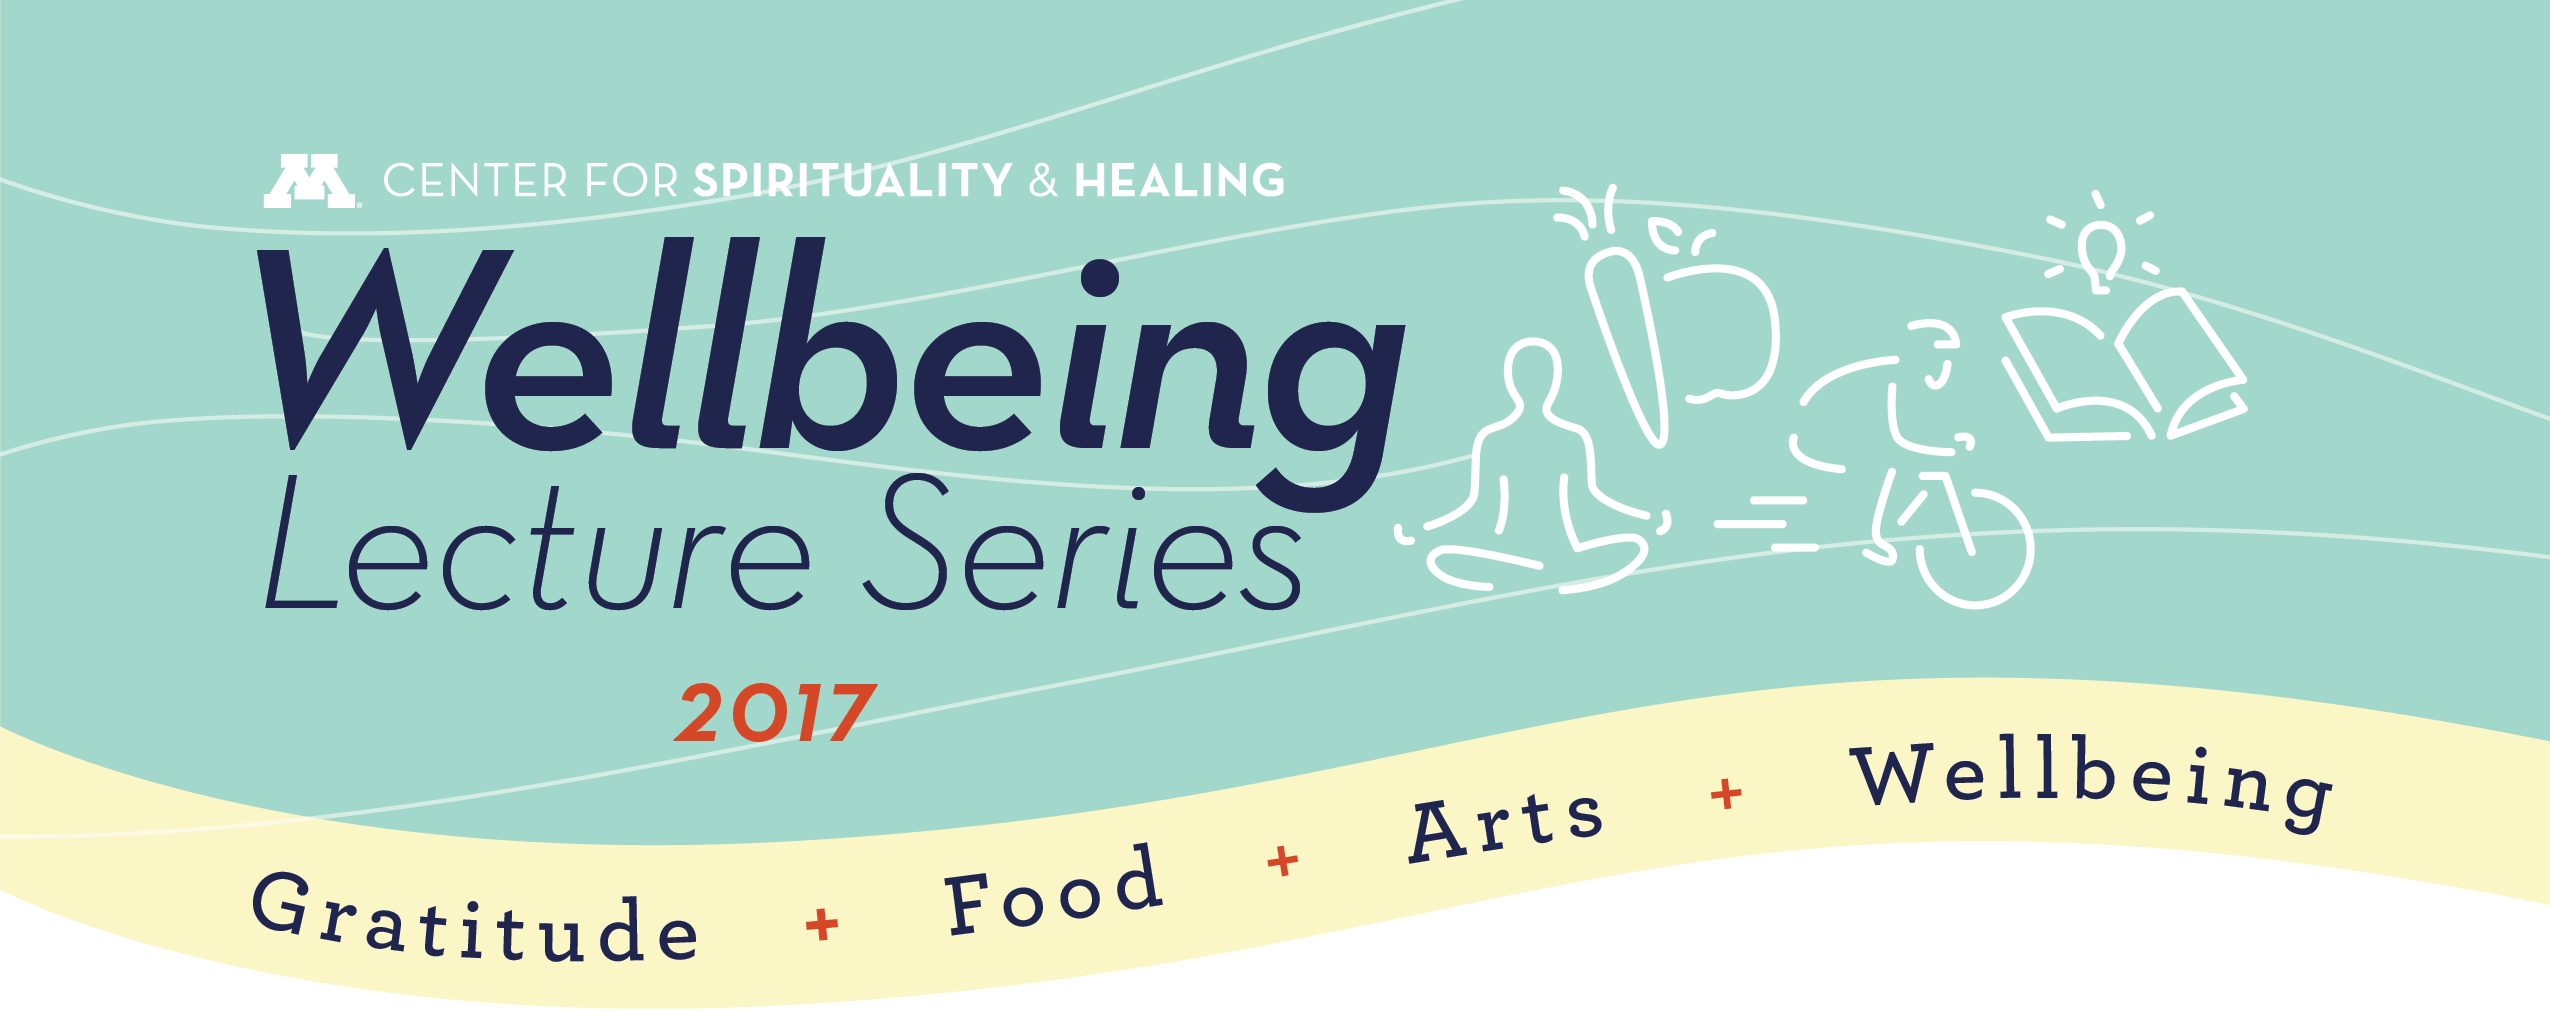 Wellbeing Lecture Series